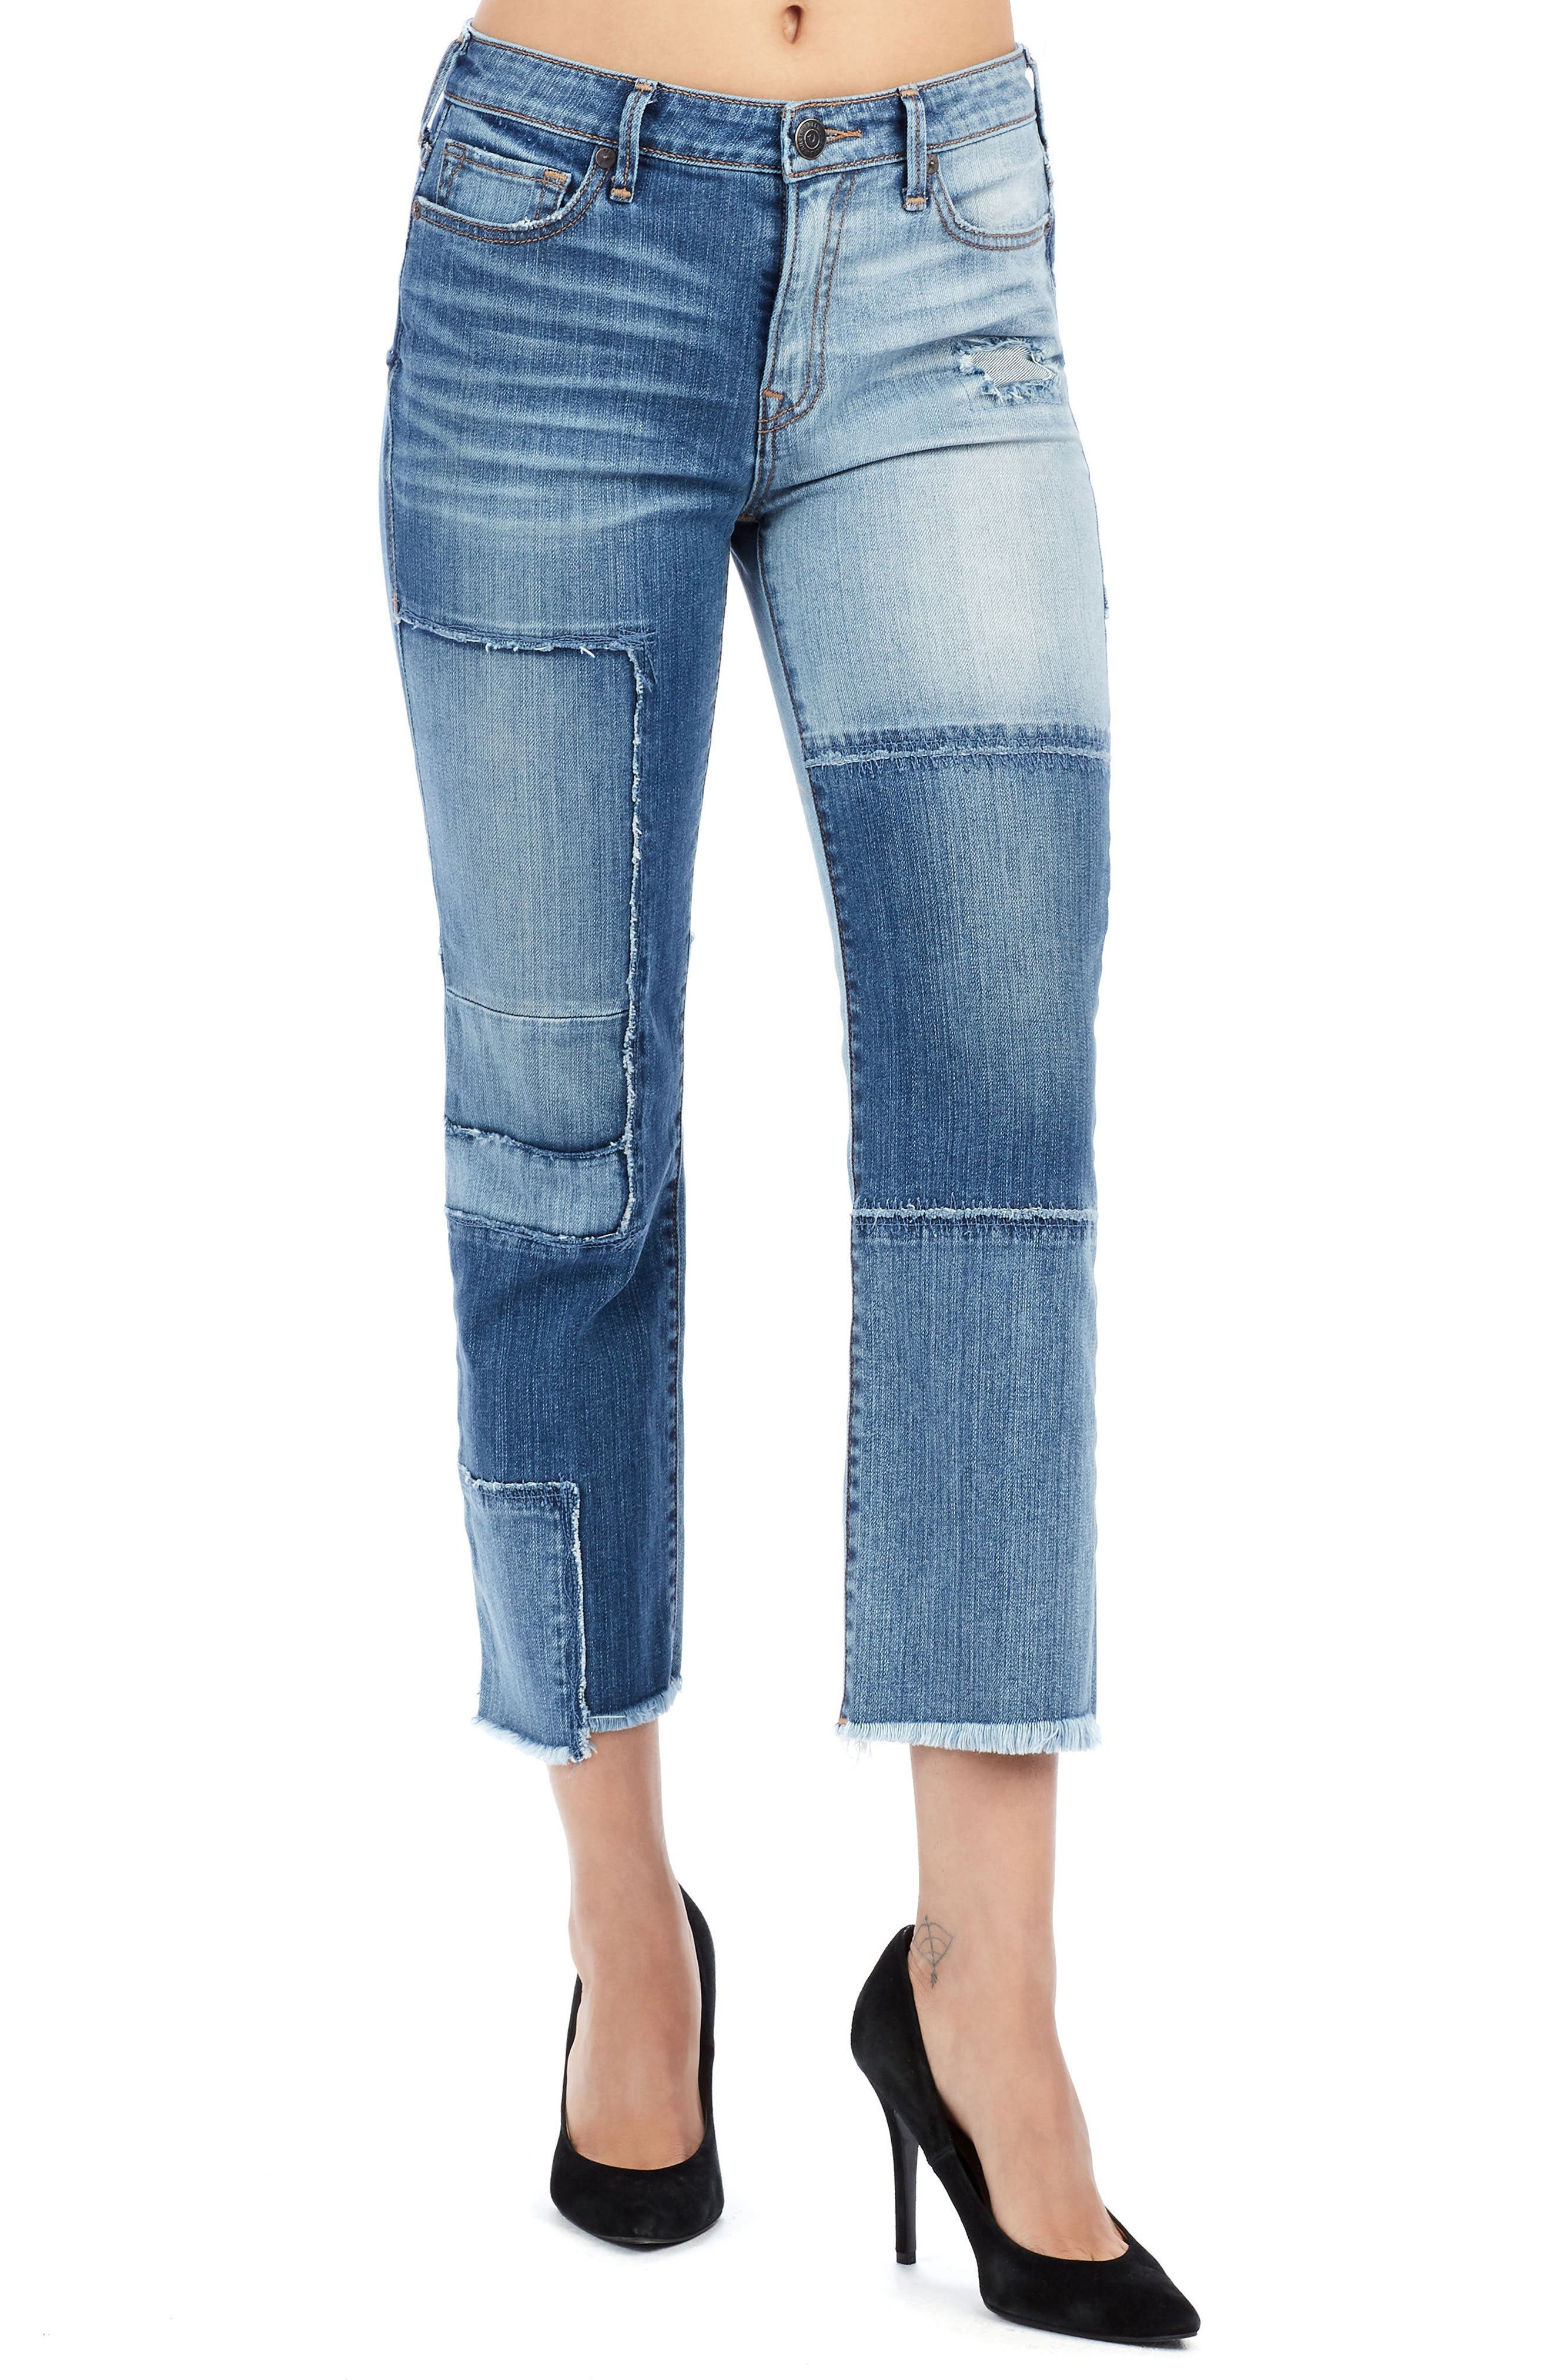 Alternate Image 1 Selected - True Religion Brand Jeans Stovepipe High Waist Crop Jeans (Mykonos)